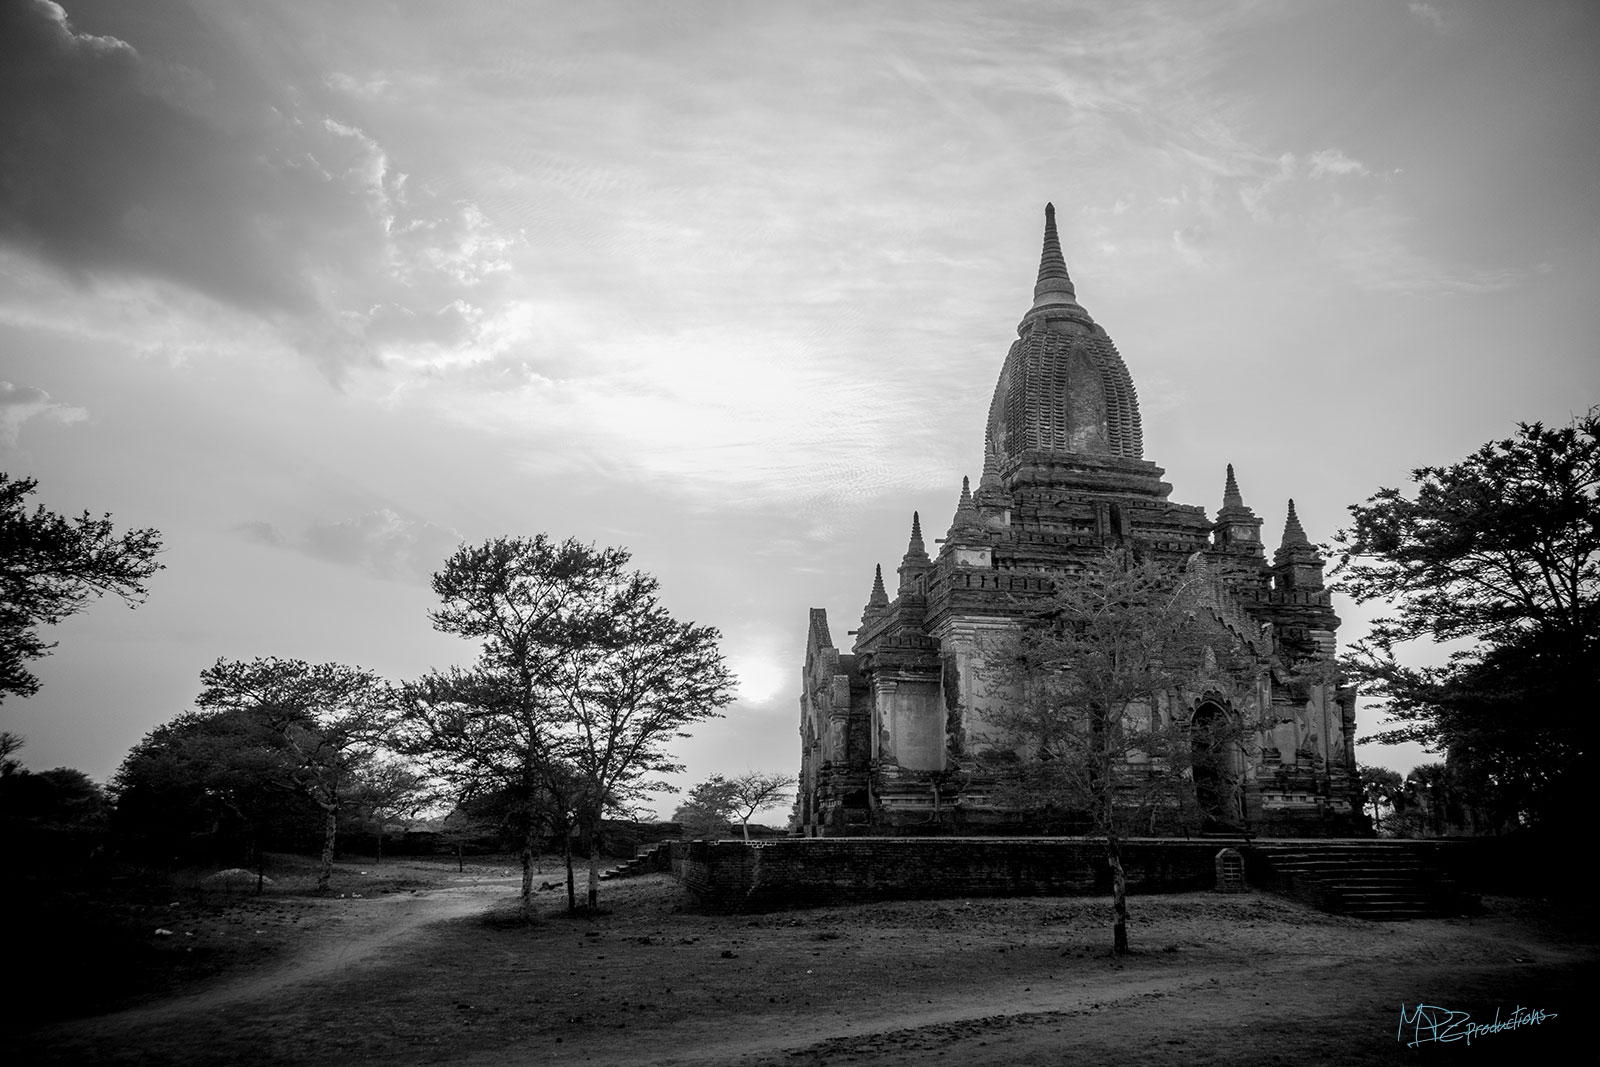 Thousands of these temples covered the plains of Bagan!